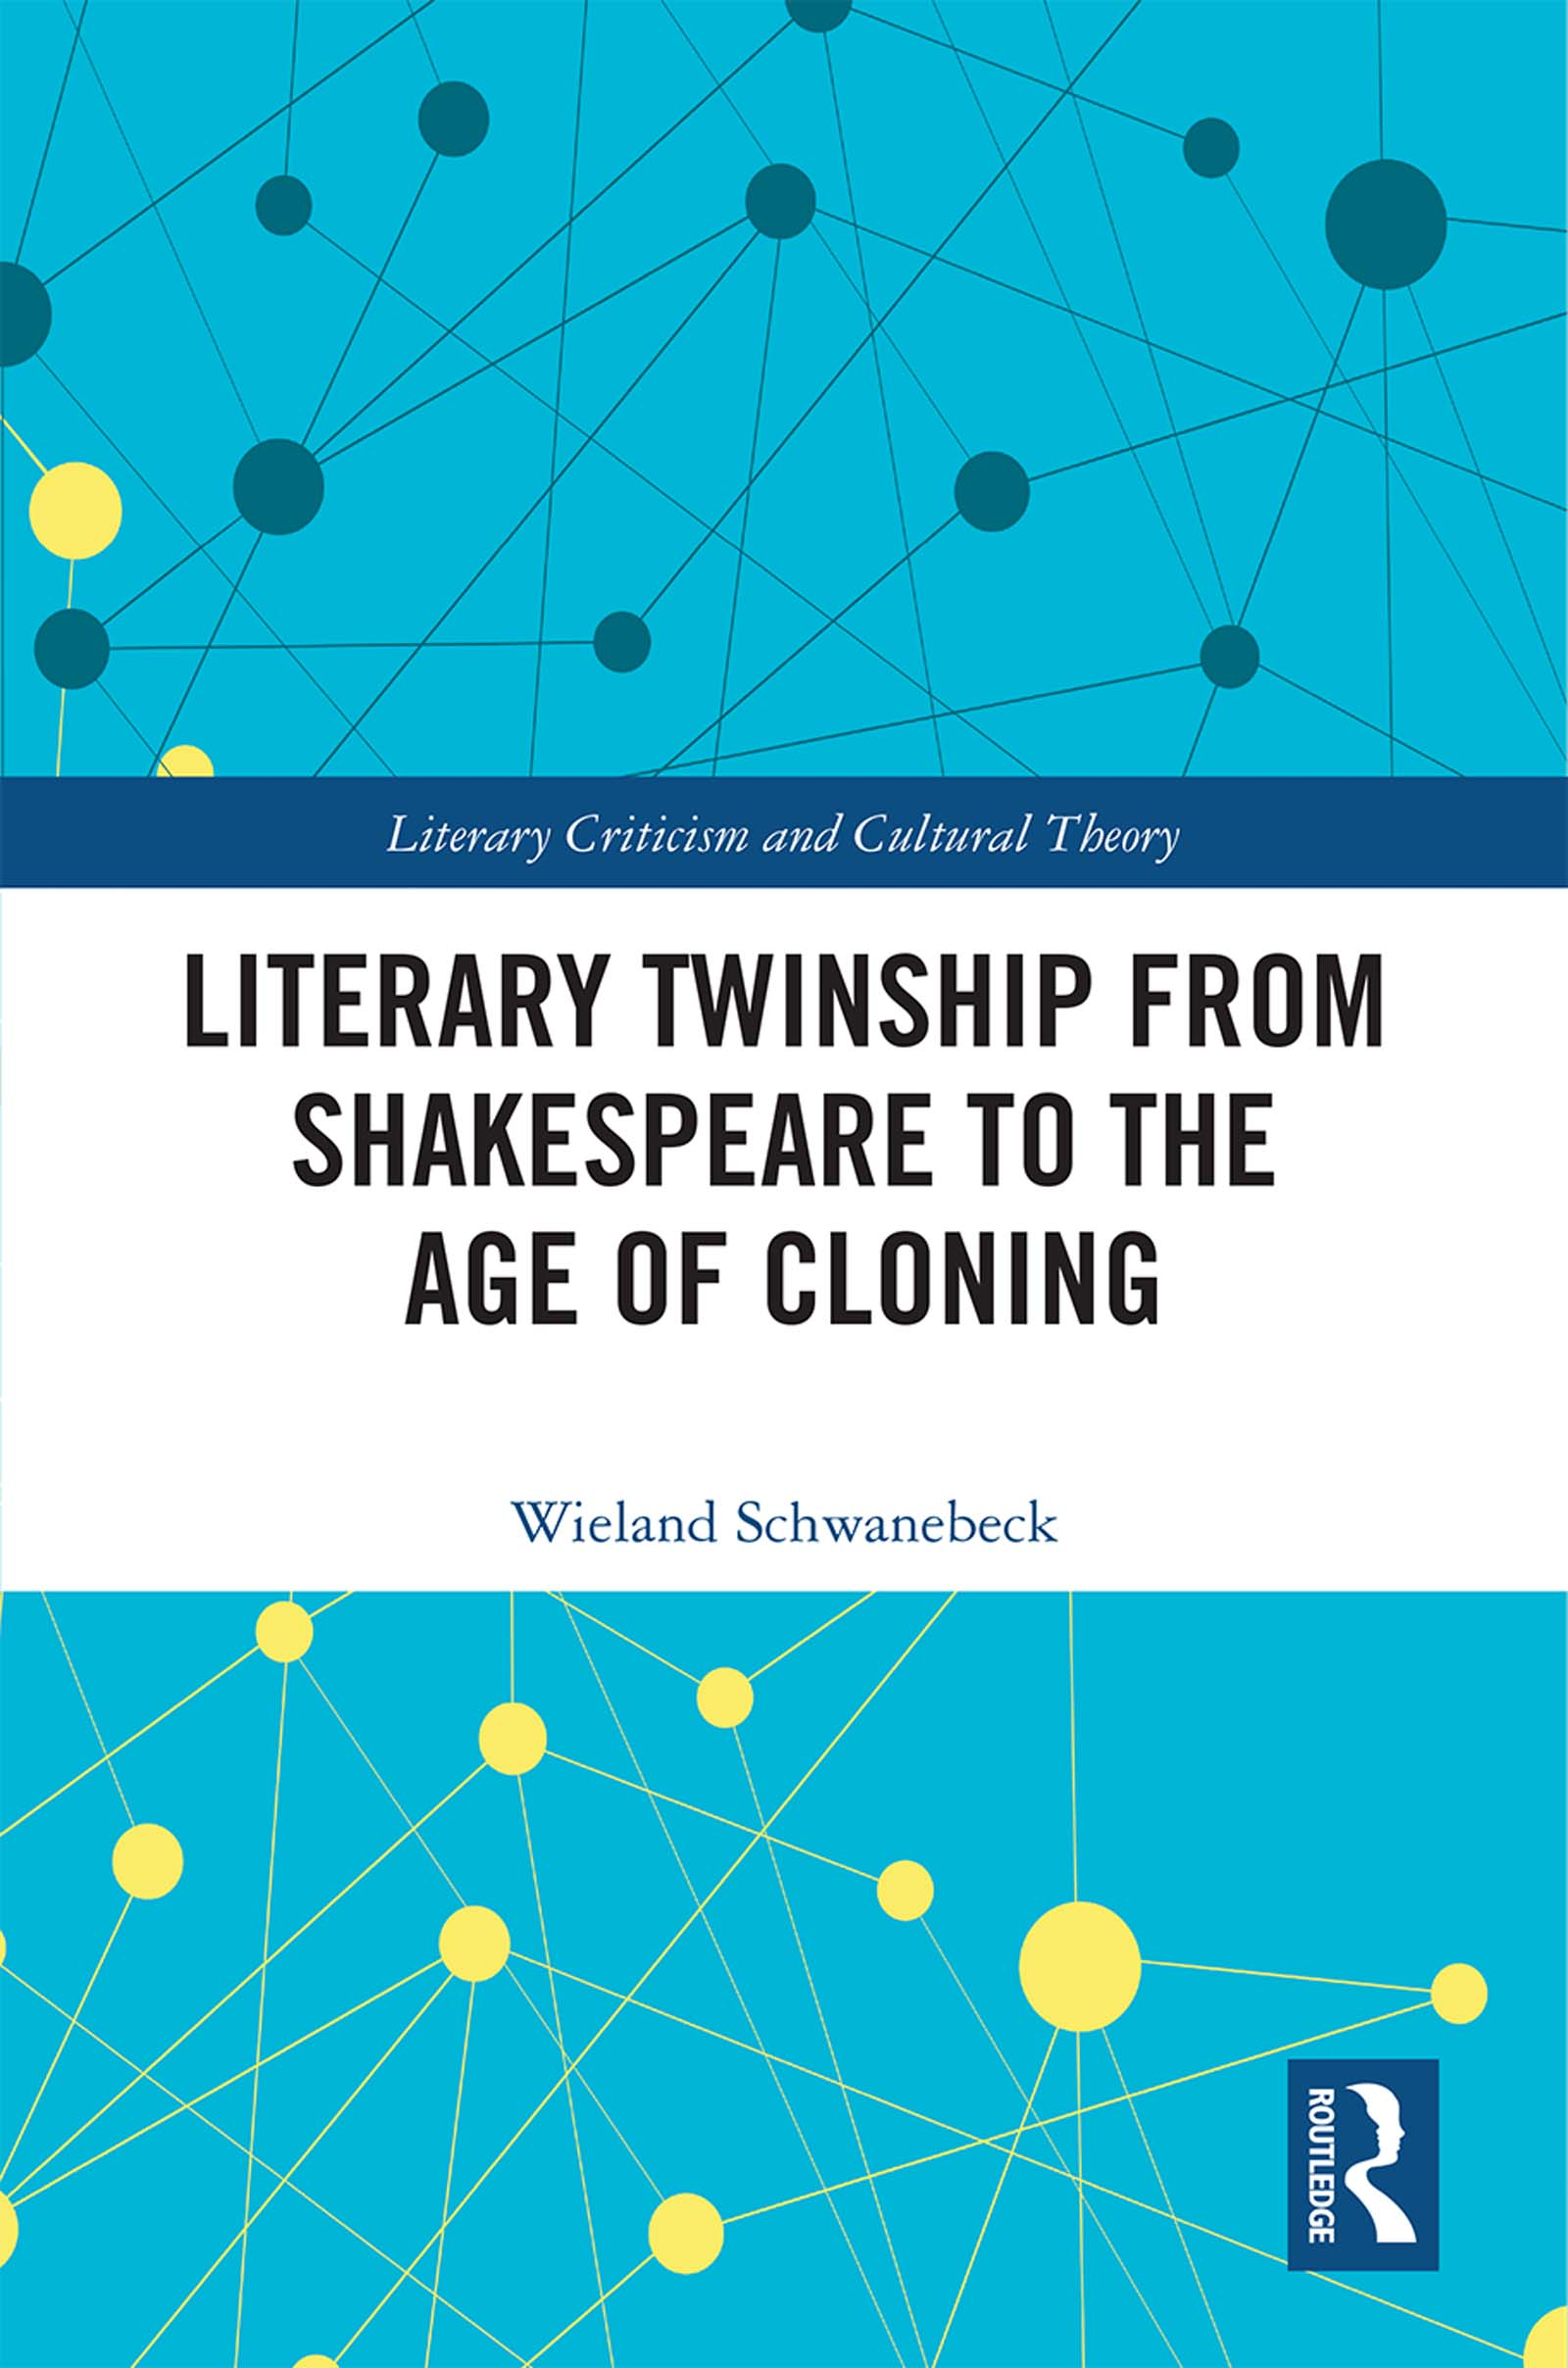 Literary Twinship from Shakespeare to the Age of Cloning book cover